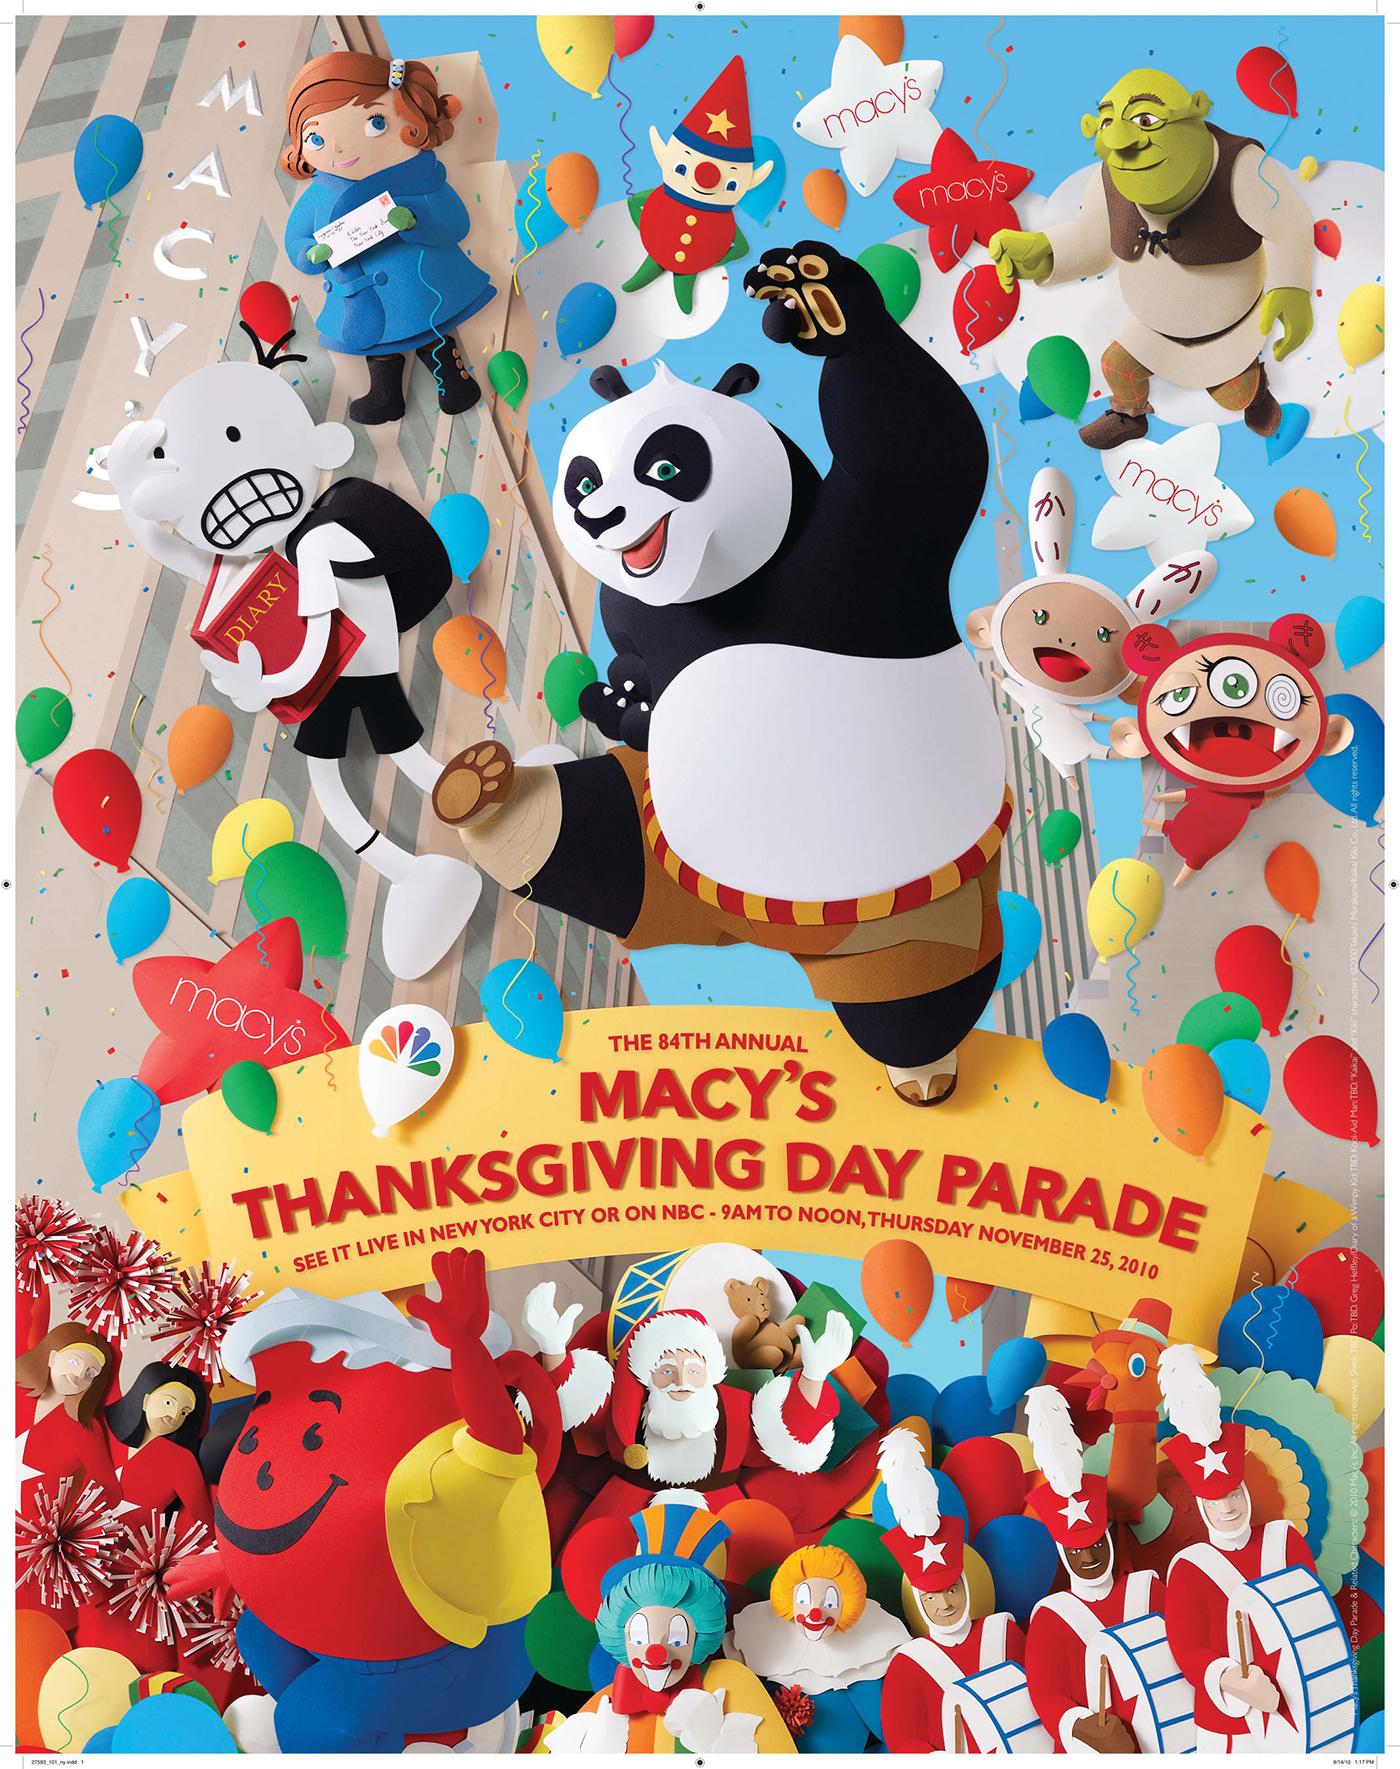 Macy S 10th Birthday Party At Dylan S Candy Bar: Macy's Thanksgiving Day Parade Poster Image On Behance